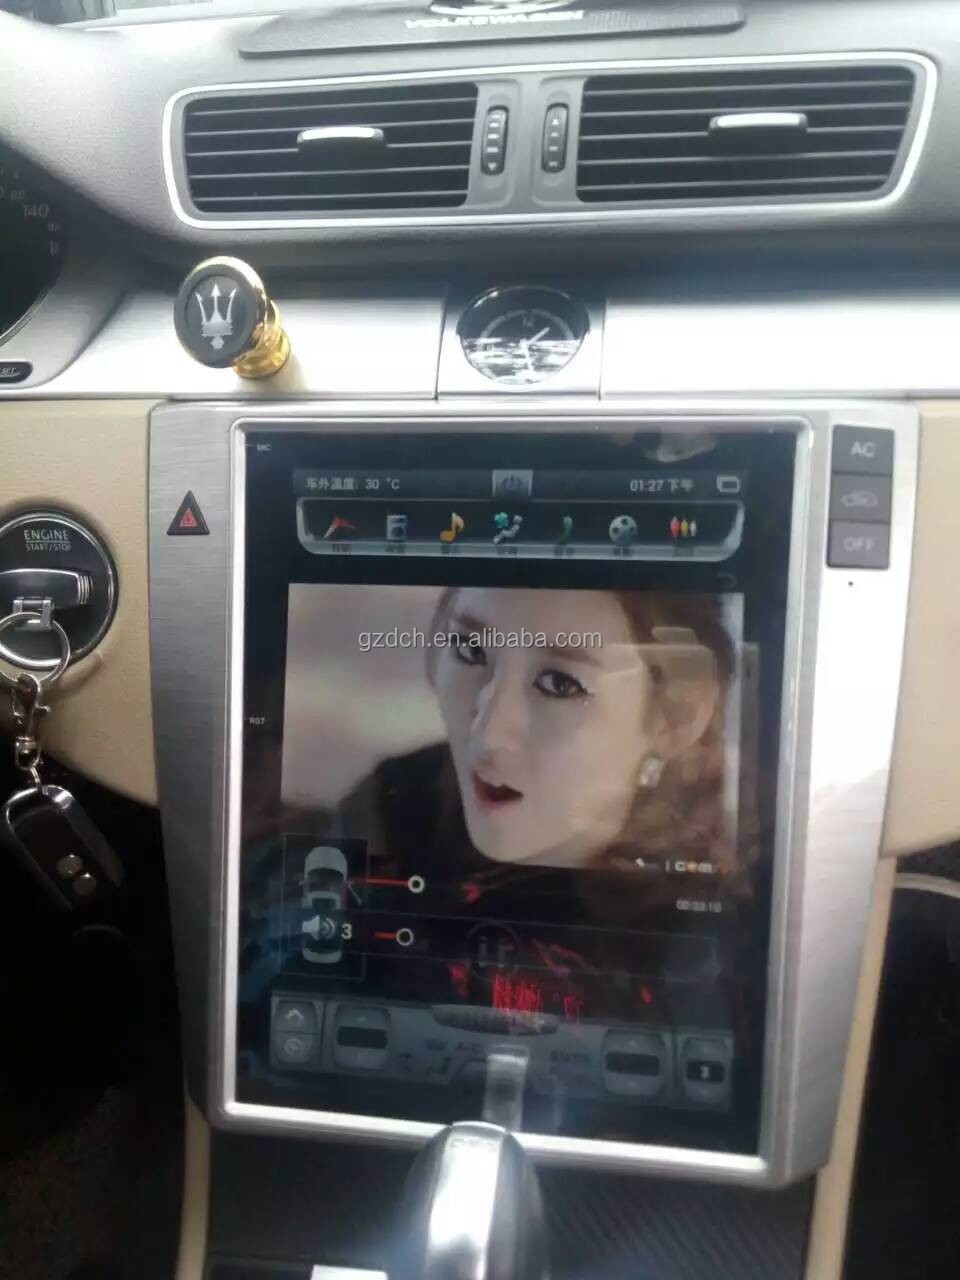 10.4 inch android car dvd player for Volkswagen VW Magotan passat CC tesla screen style vertical screen quad core 32G WS-1049S